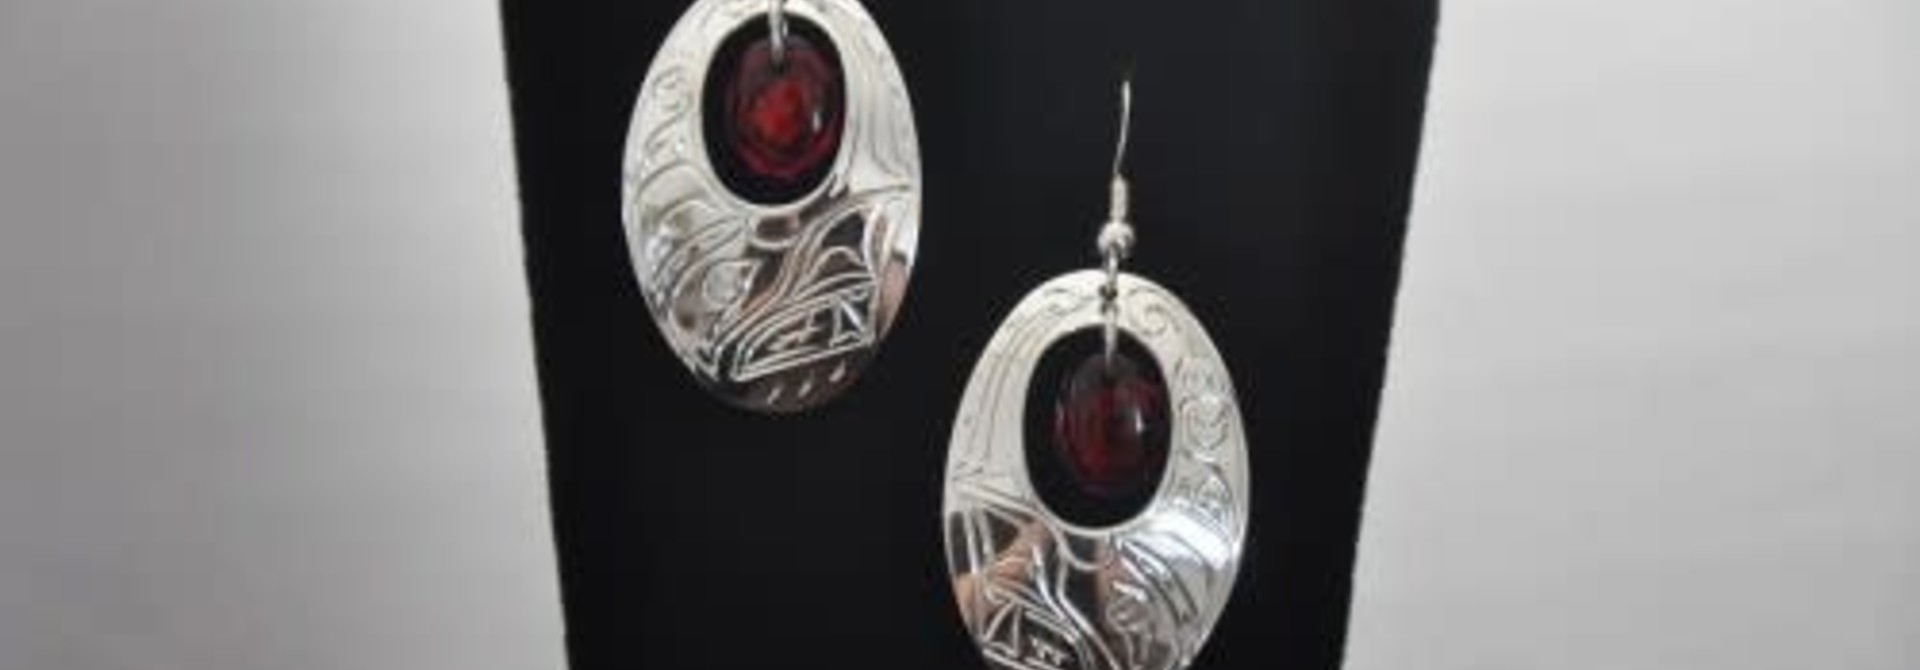 Silver Carved Earrings with Red Paua Shell in Center- Eagle design